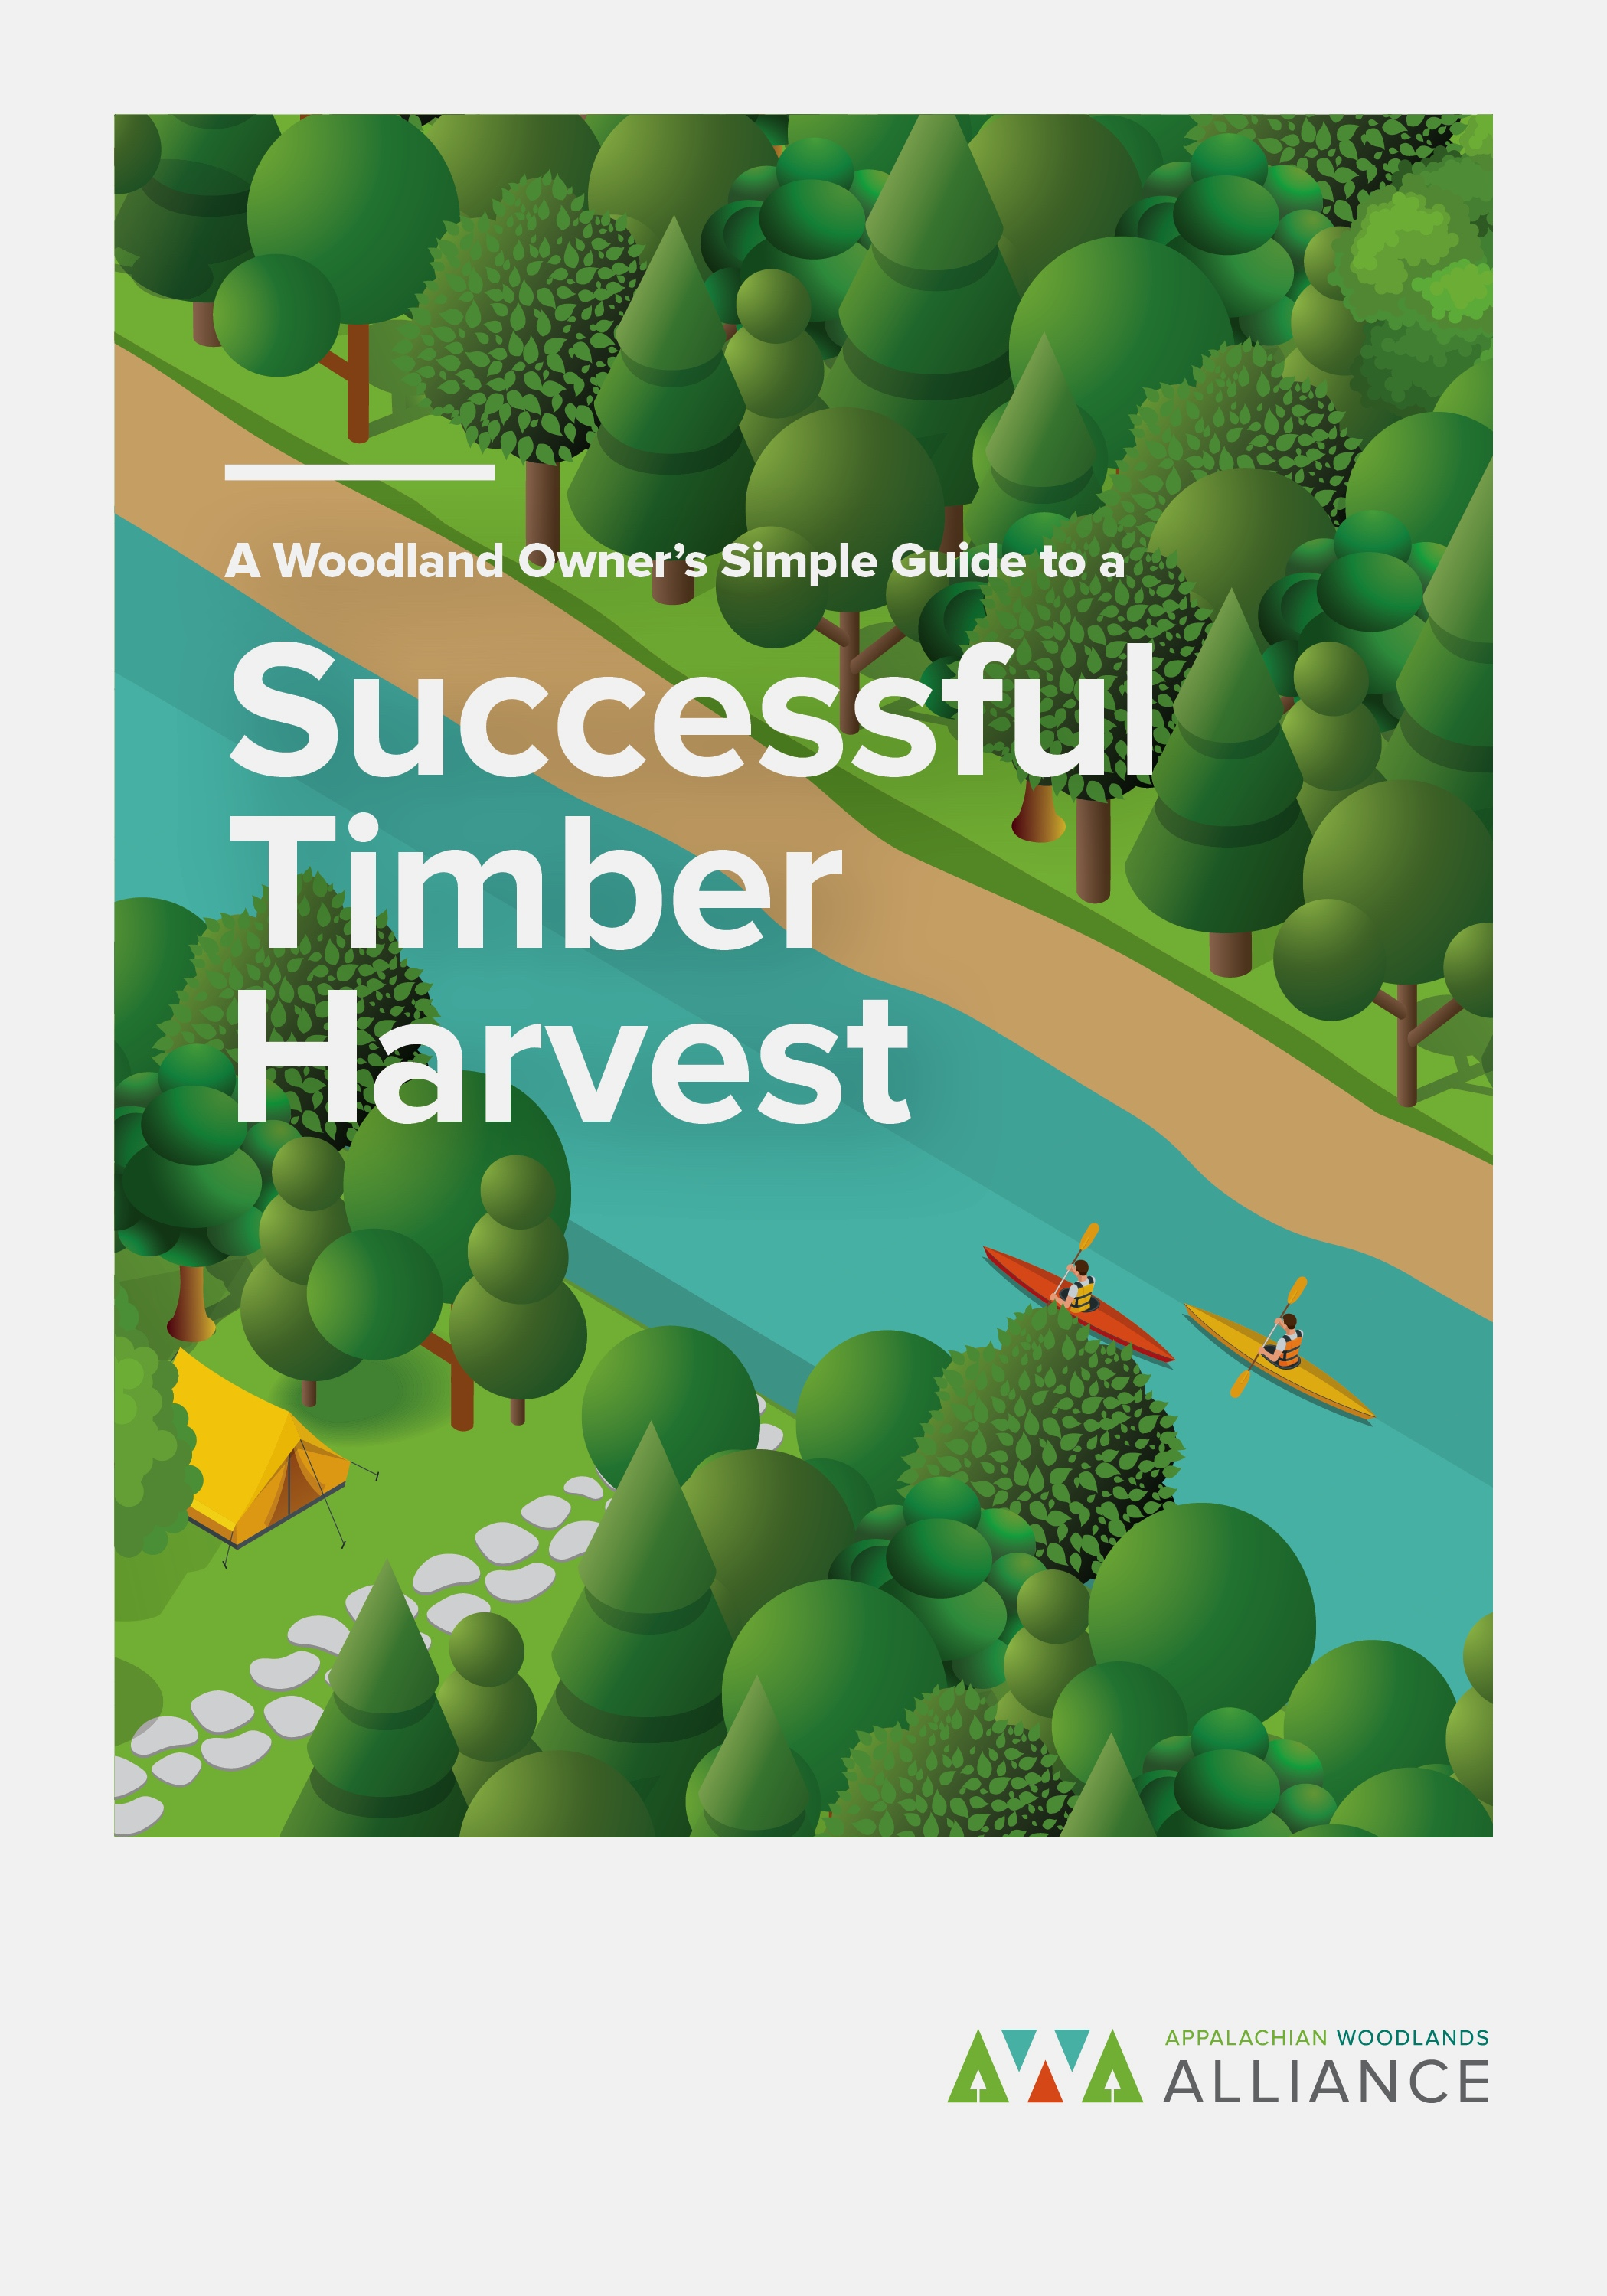 A Woodland Owner's Simple Guide to a Successful Timber Harvest -